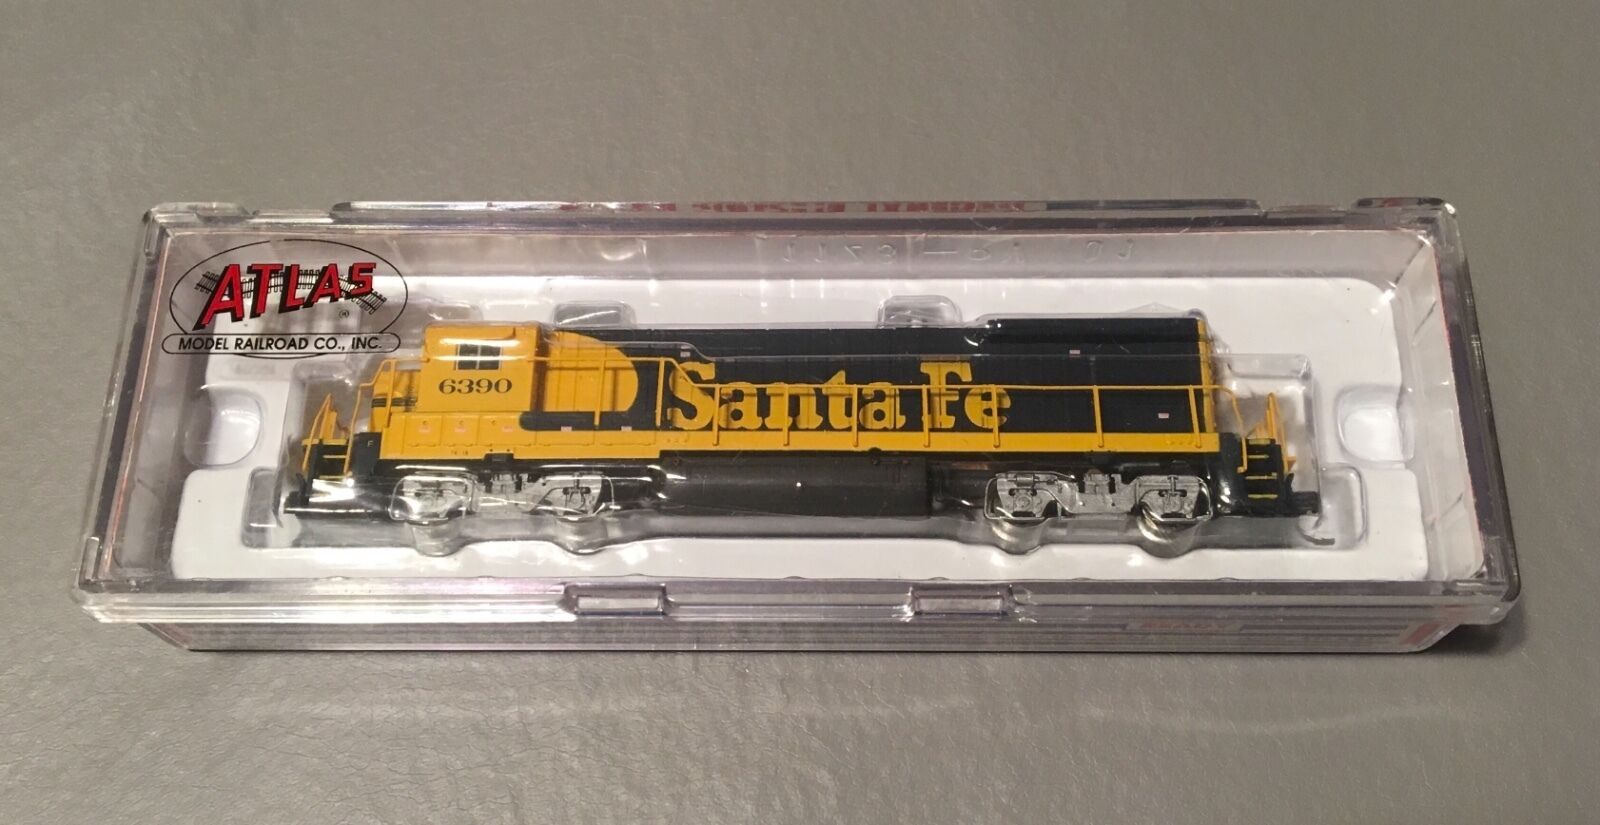 NOS ATLAS 49707 B23-7 Locomotive SANTA FE DECODER READY DIESEL TRAIN N